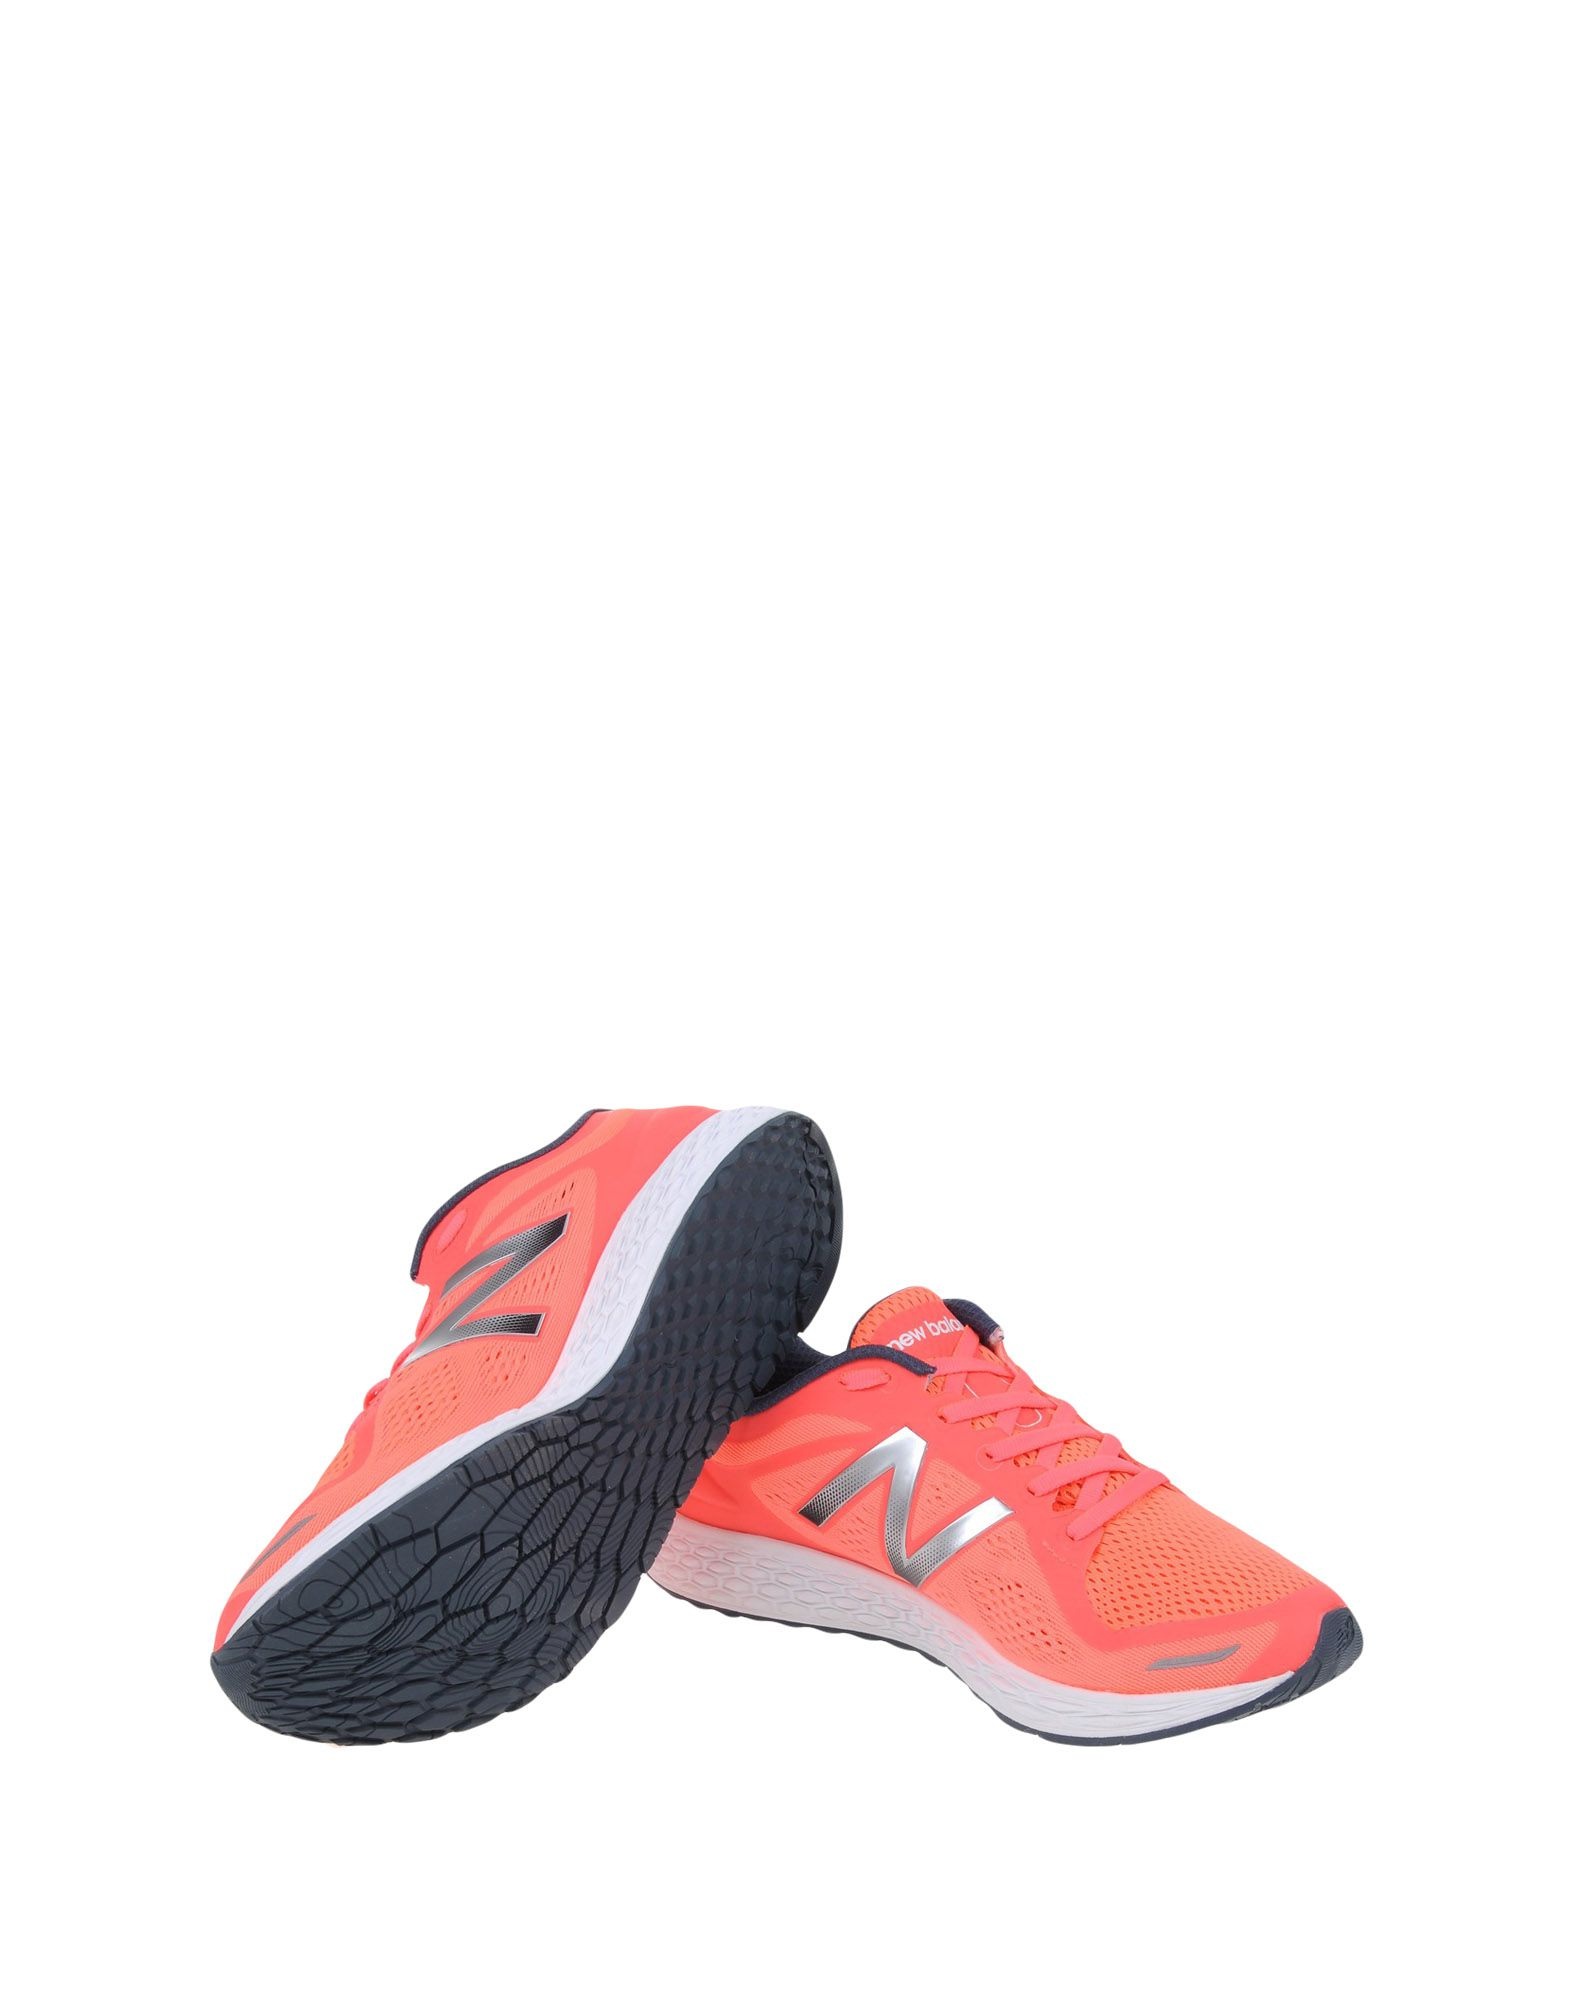 Sneakers New Balance Fresh Foam Zante - Femme - Sneakers New Balance sur